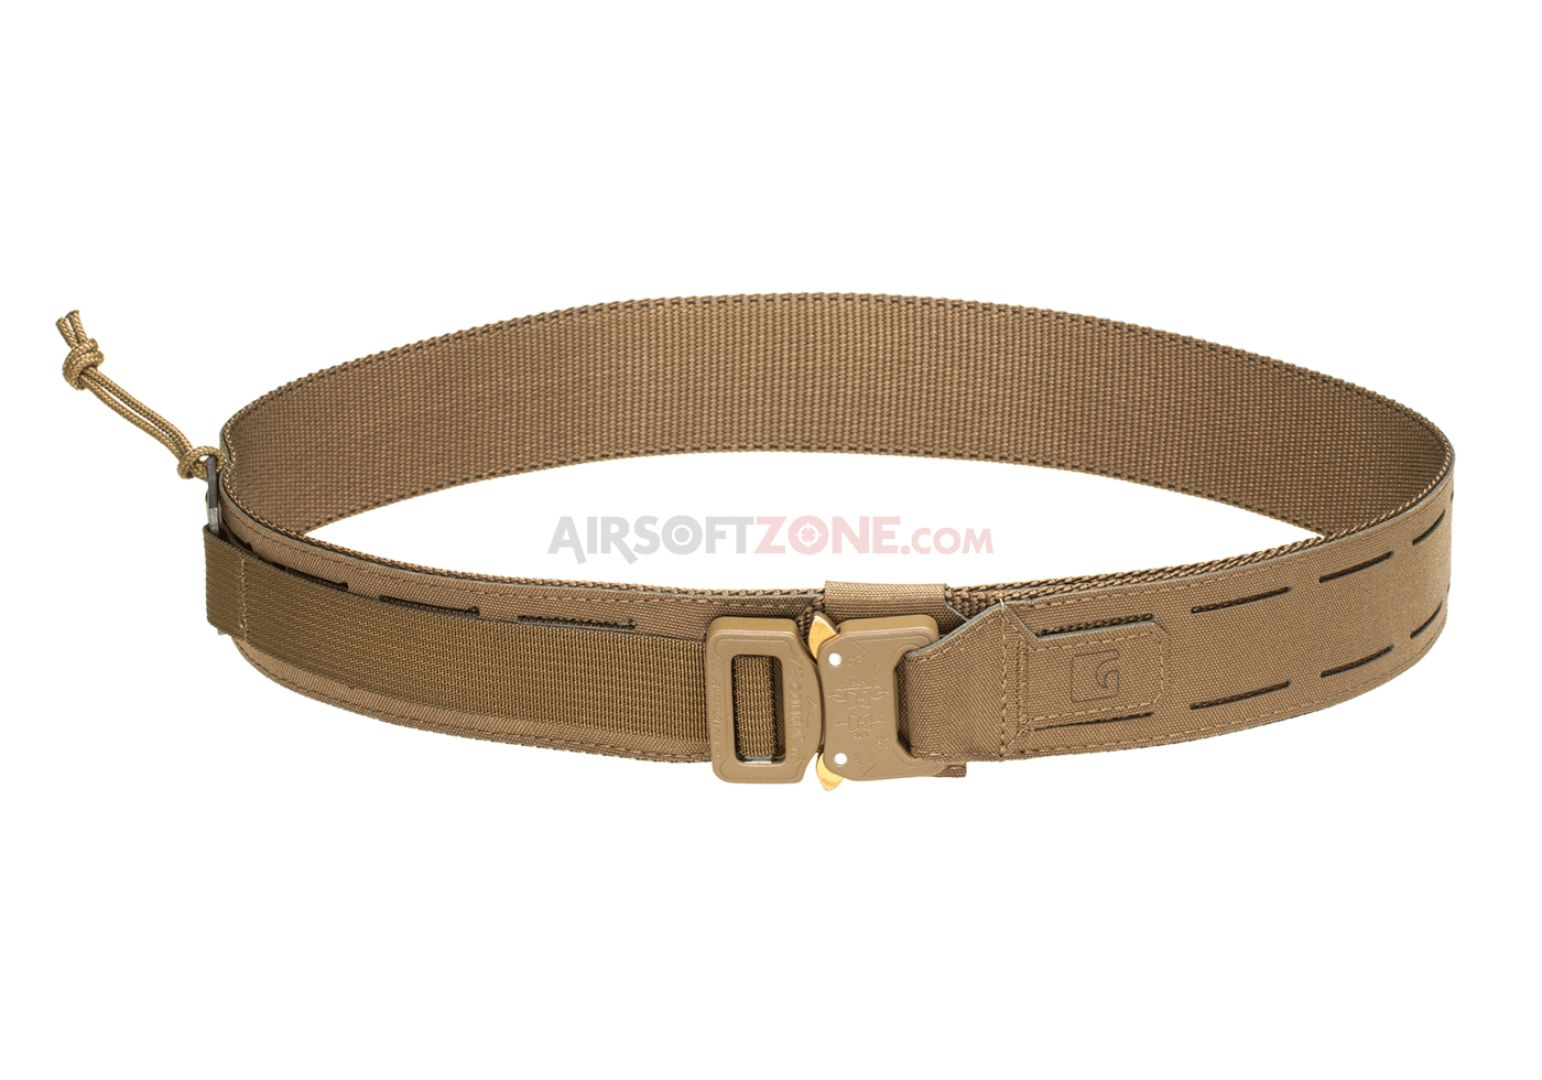 Cintura KD one belt Coyote